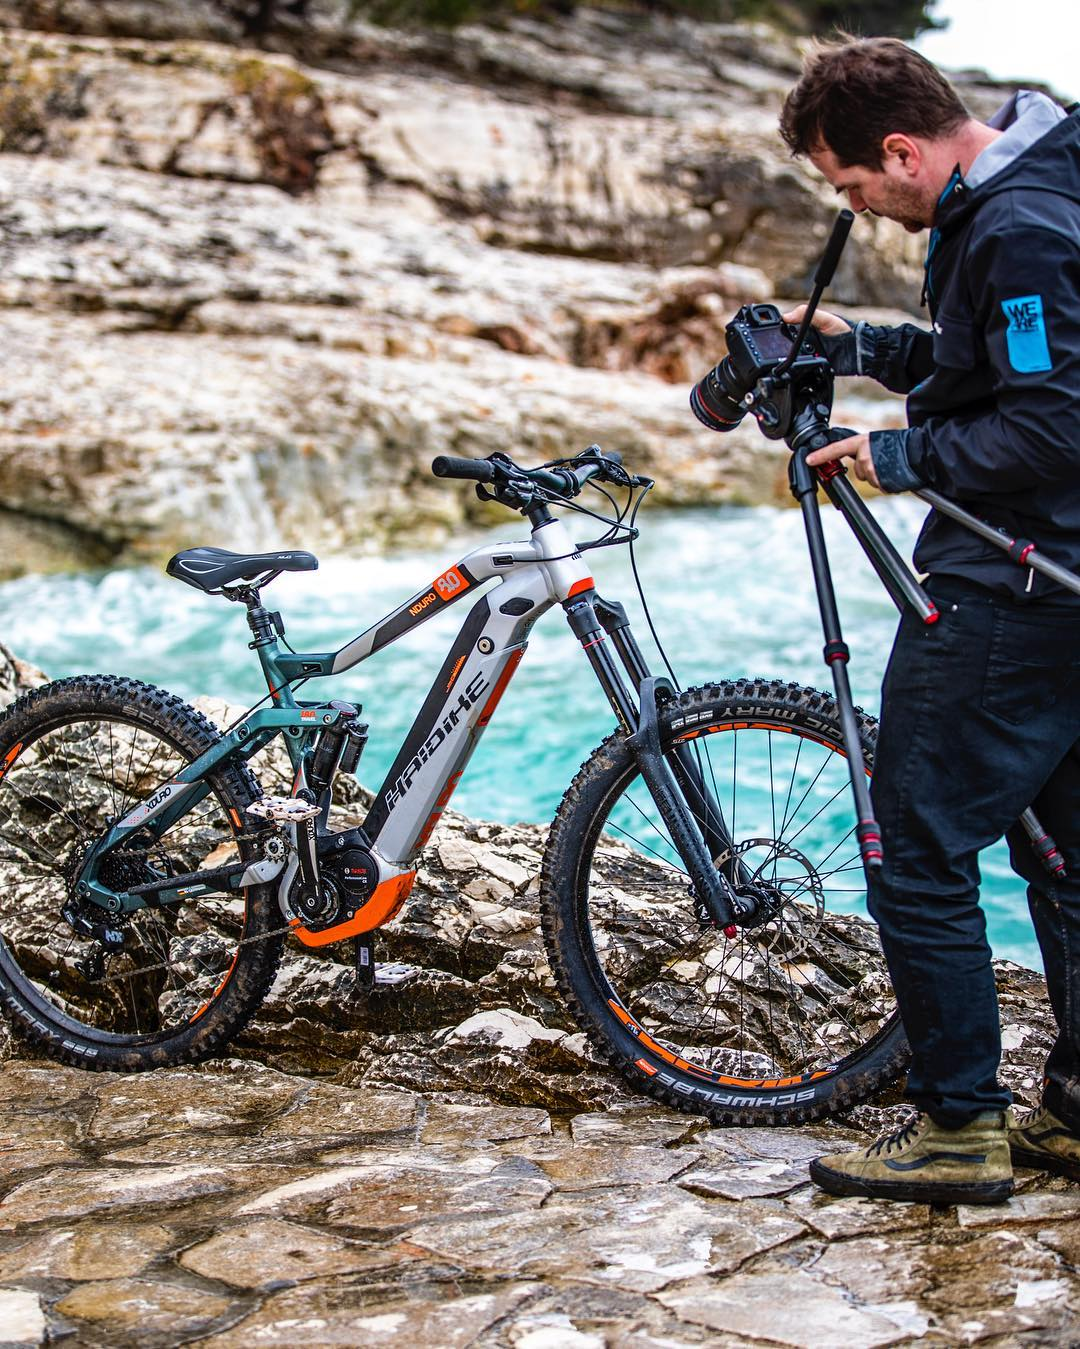 Up close, behind the scenes. #haibike #nduro #emtb #agencylife #weareeperformance